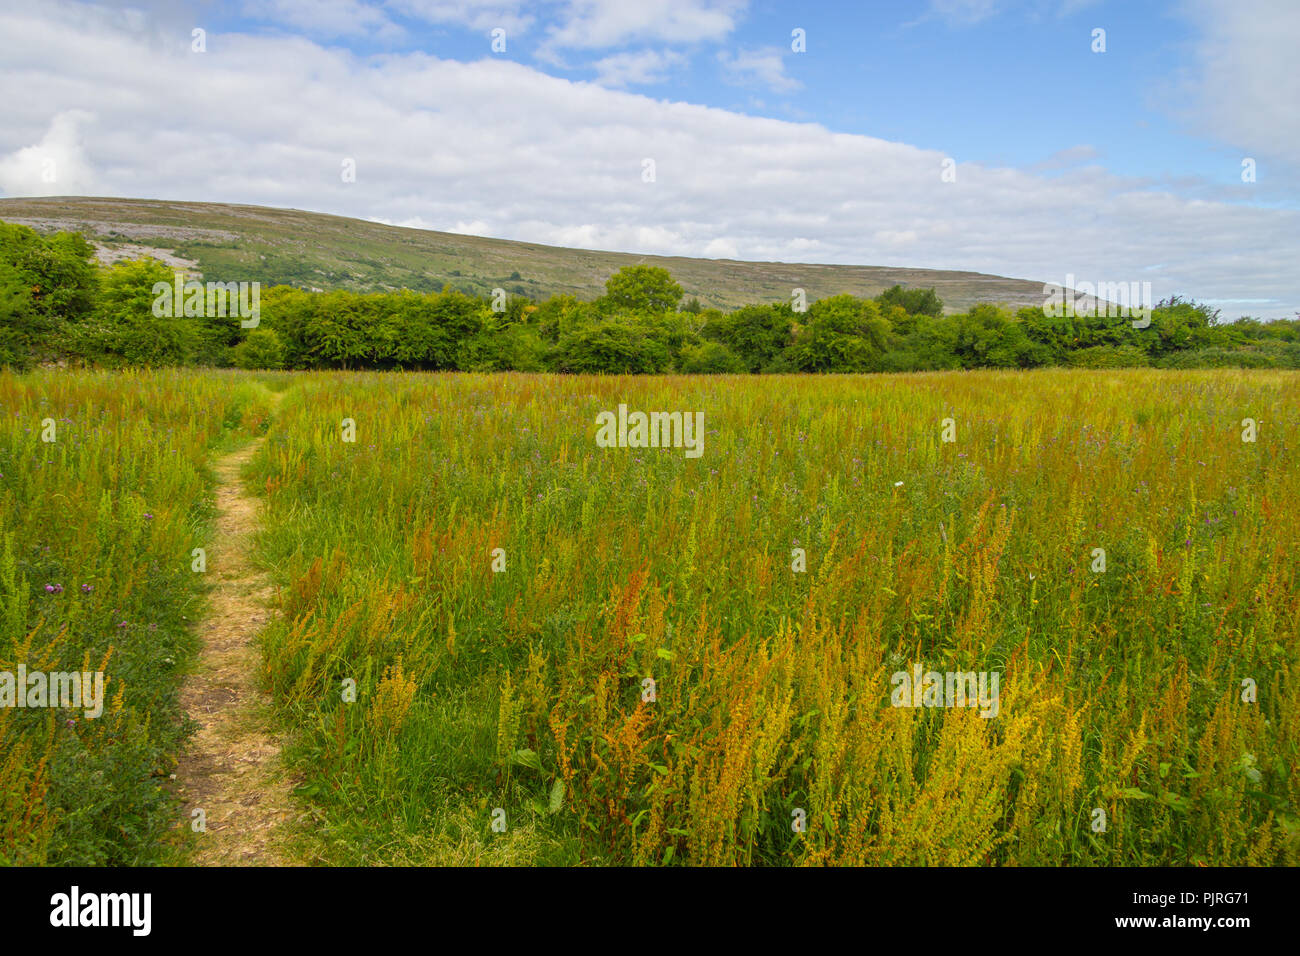 Hiking trail with Mountain and vegetation in Ballyvaughan, Ireland - Stock Image